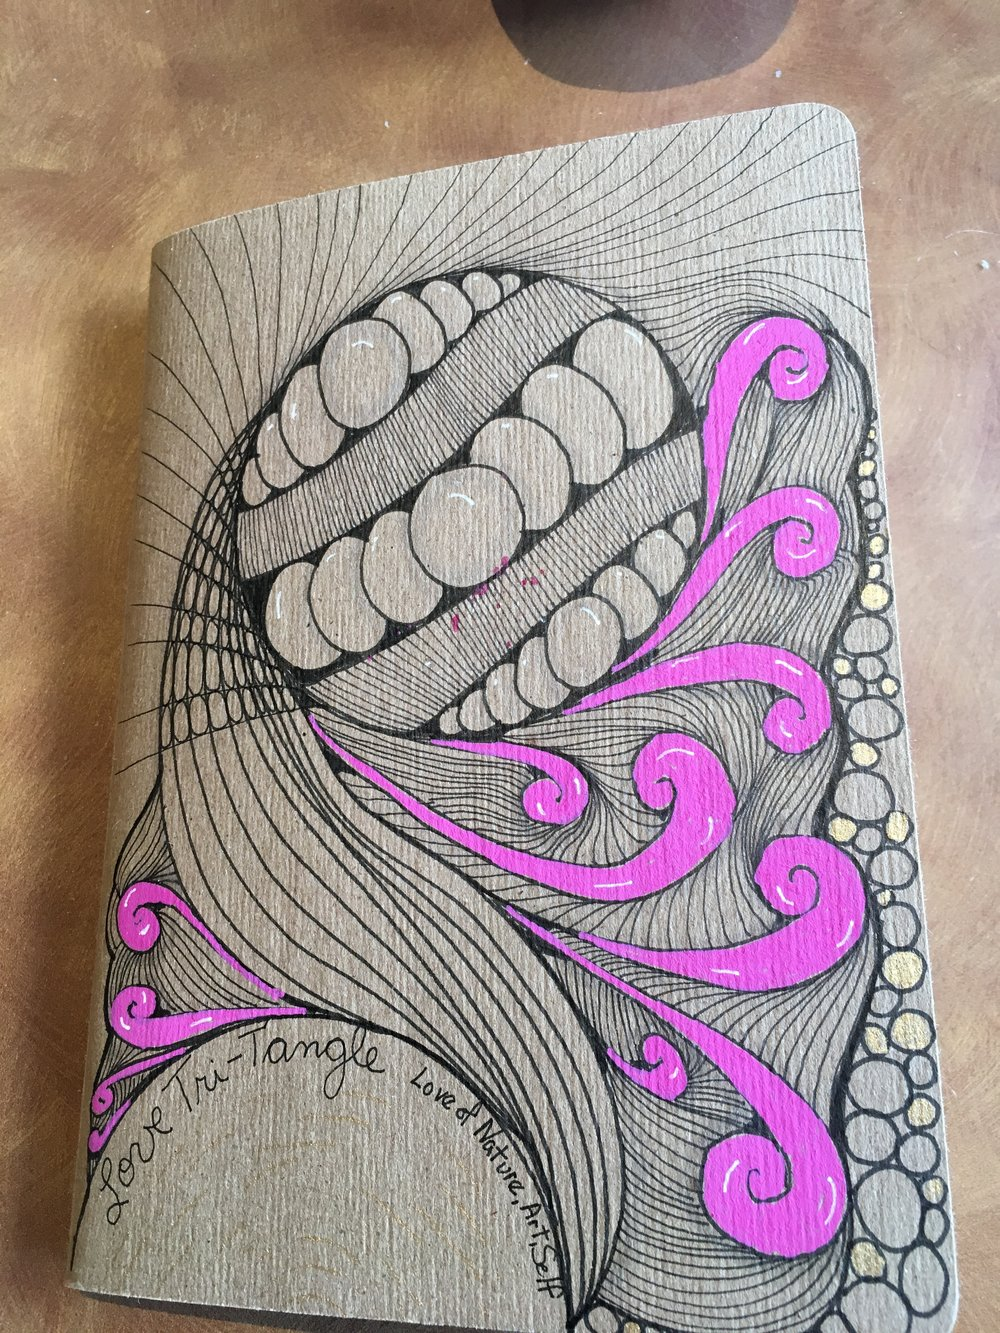 Purposeful Art Journaling - Learn to use the Zentangle Method of Art in your journey for less stress, more relaxation, self-expression, and meditation.This class meets 1 .5 hours/once a week/for 6 weeks and includes an art journal, pens, Zentangle instruction, a plan for your journey, and other supplies.Does not require the prerequisite Zentangle Introduction Workshop